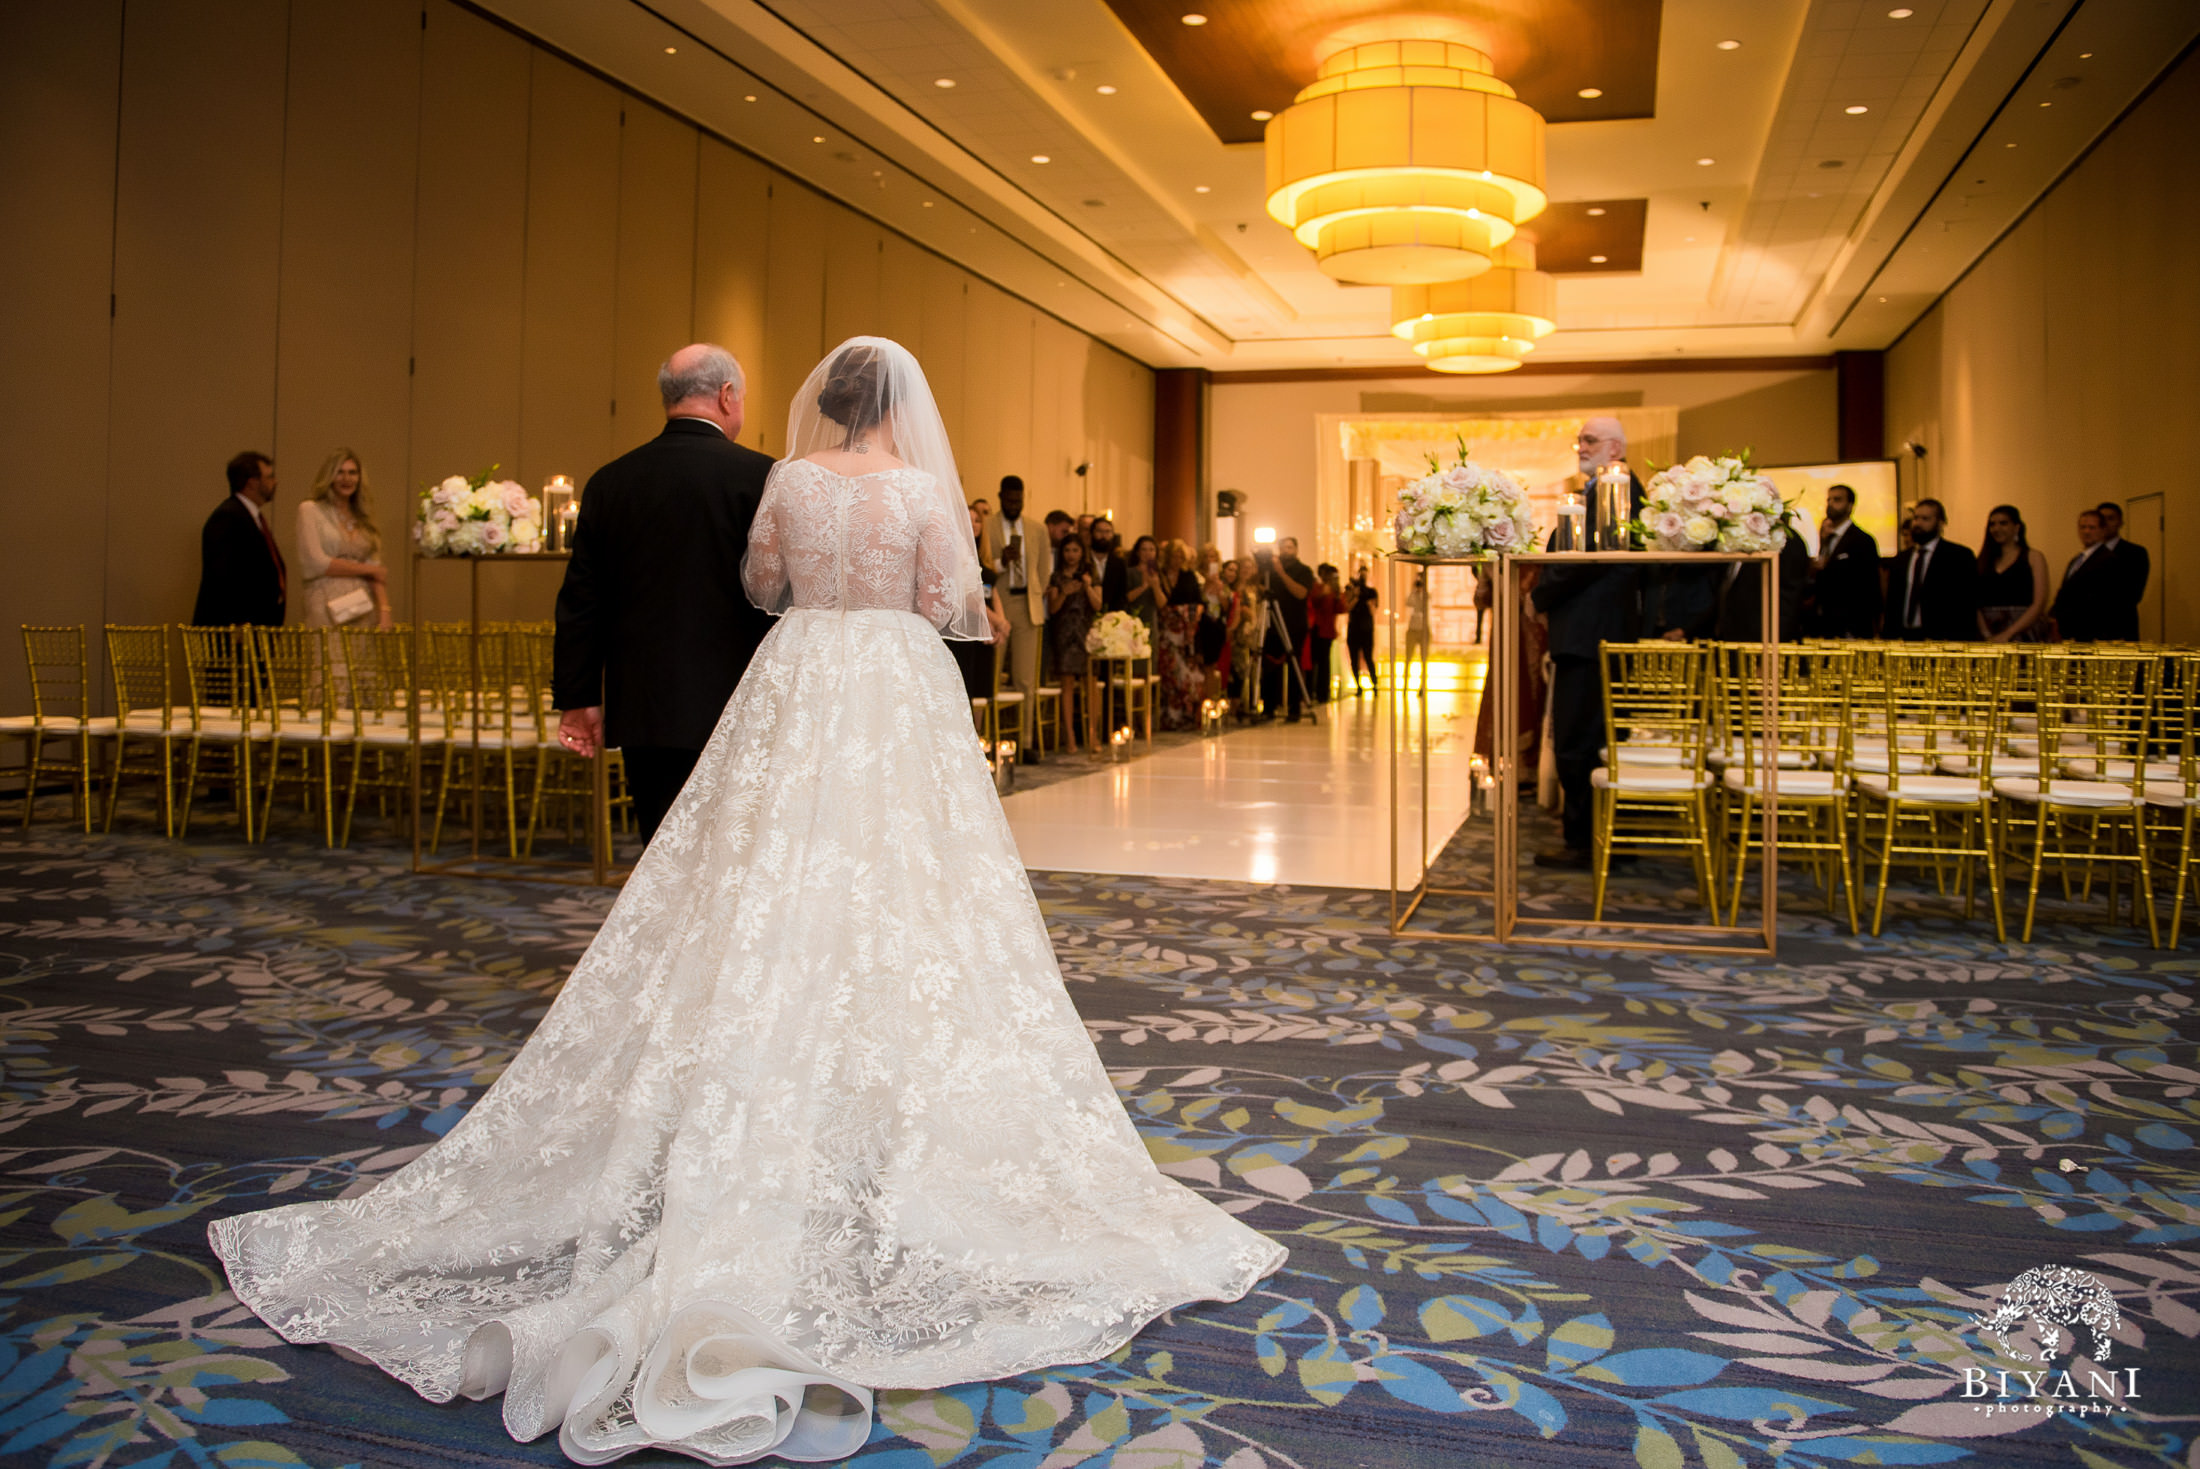 Bride escorted by her father down the aisle